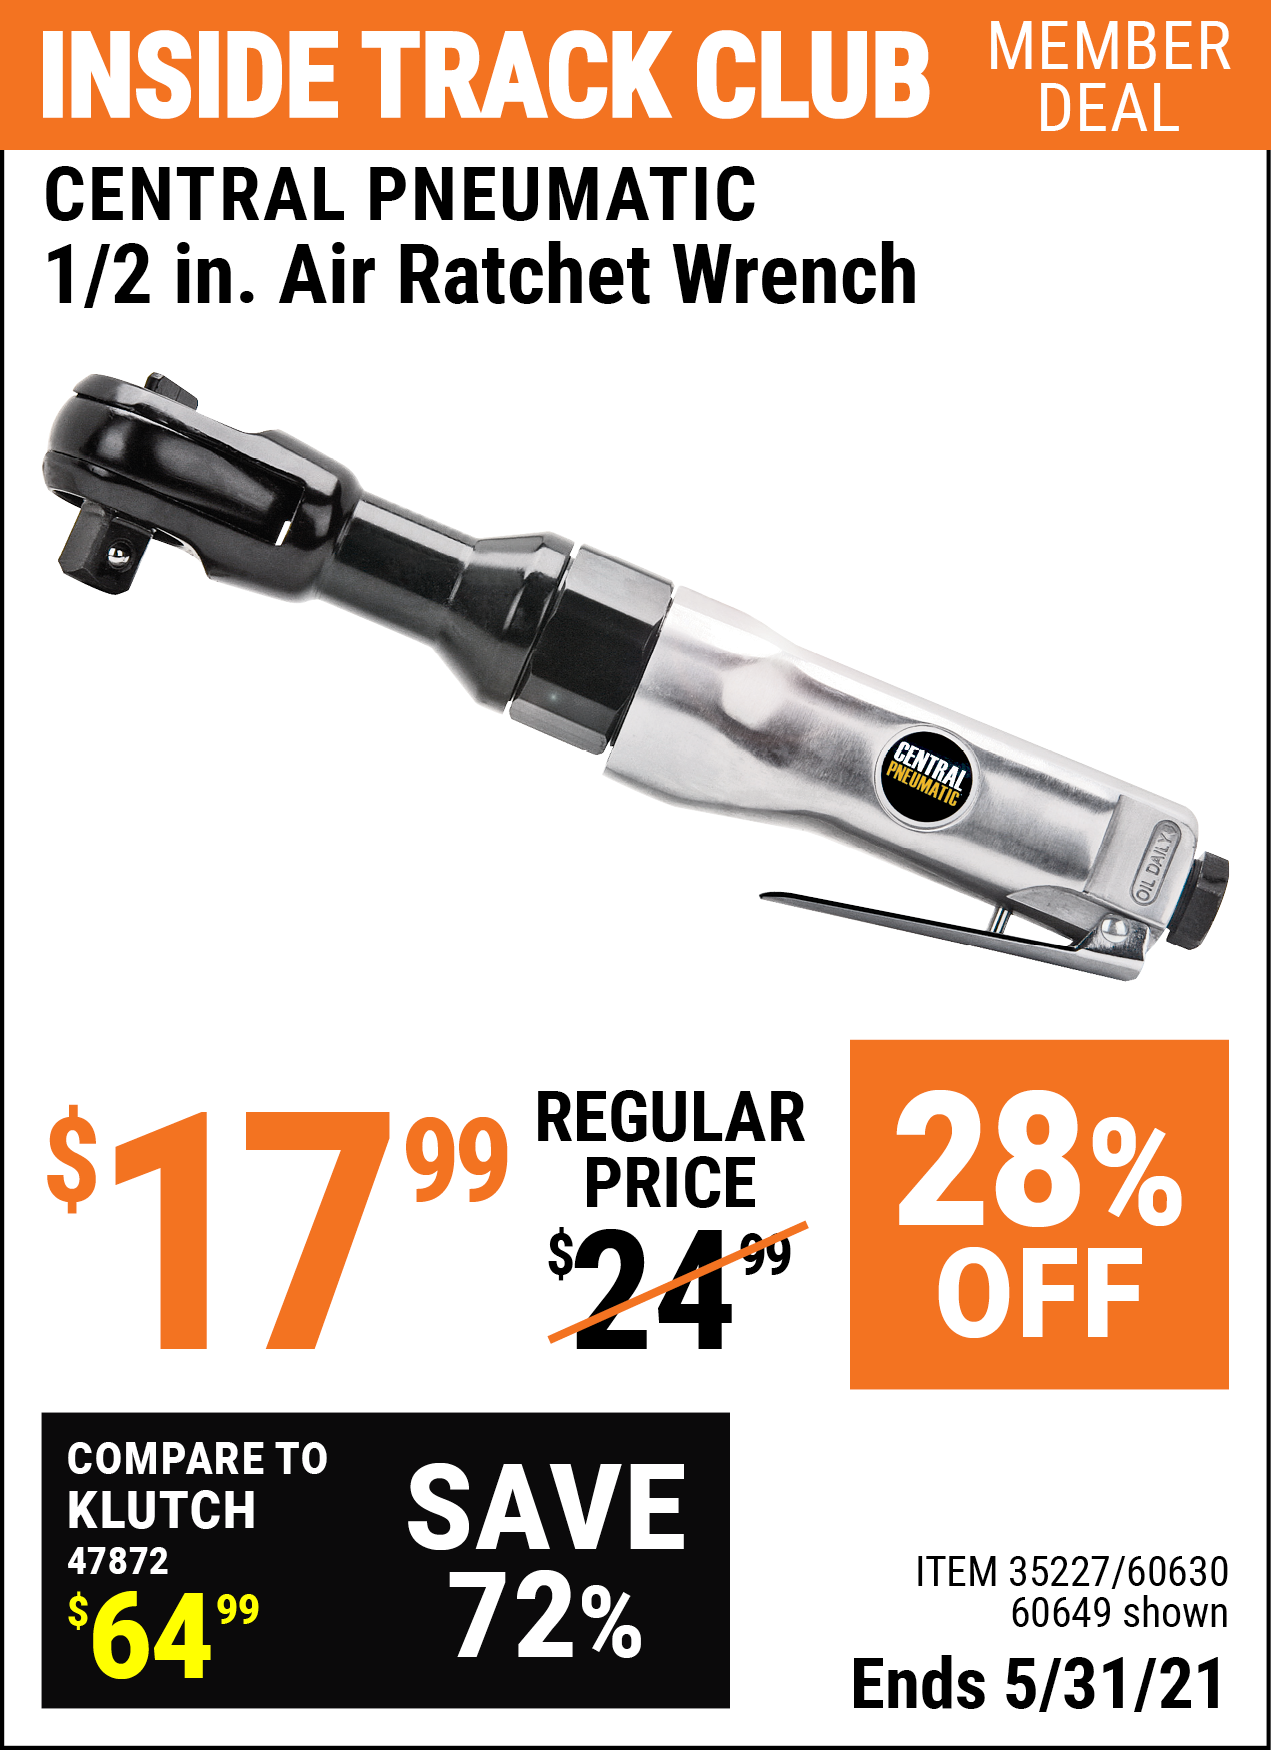 Inside Track Club members can buy the CENTRAL PNEUMATIC 1/2 In. Air Ratchet Wrench (Item 60649/35227/60630) for $17.99, valid through 5/31/2021.